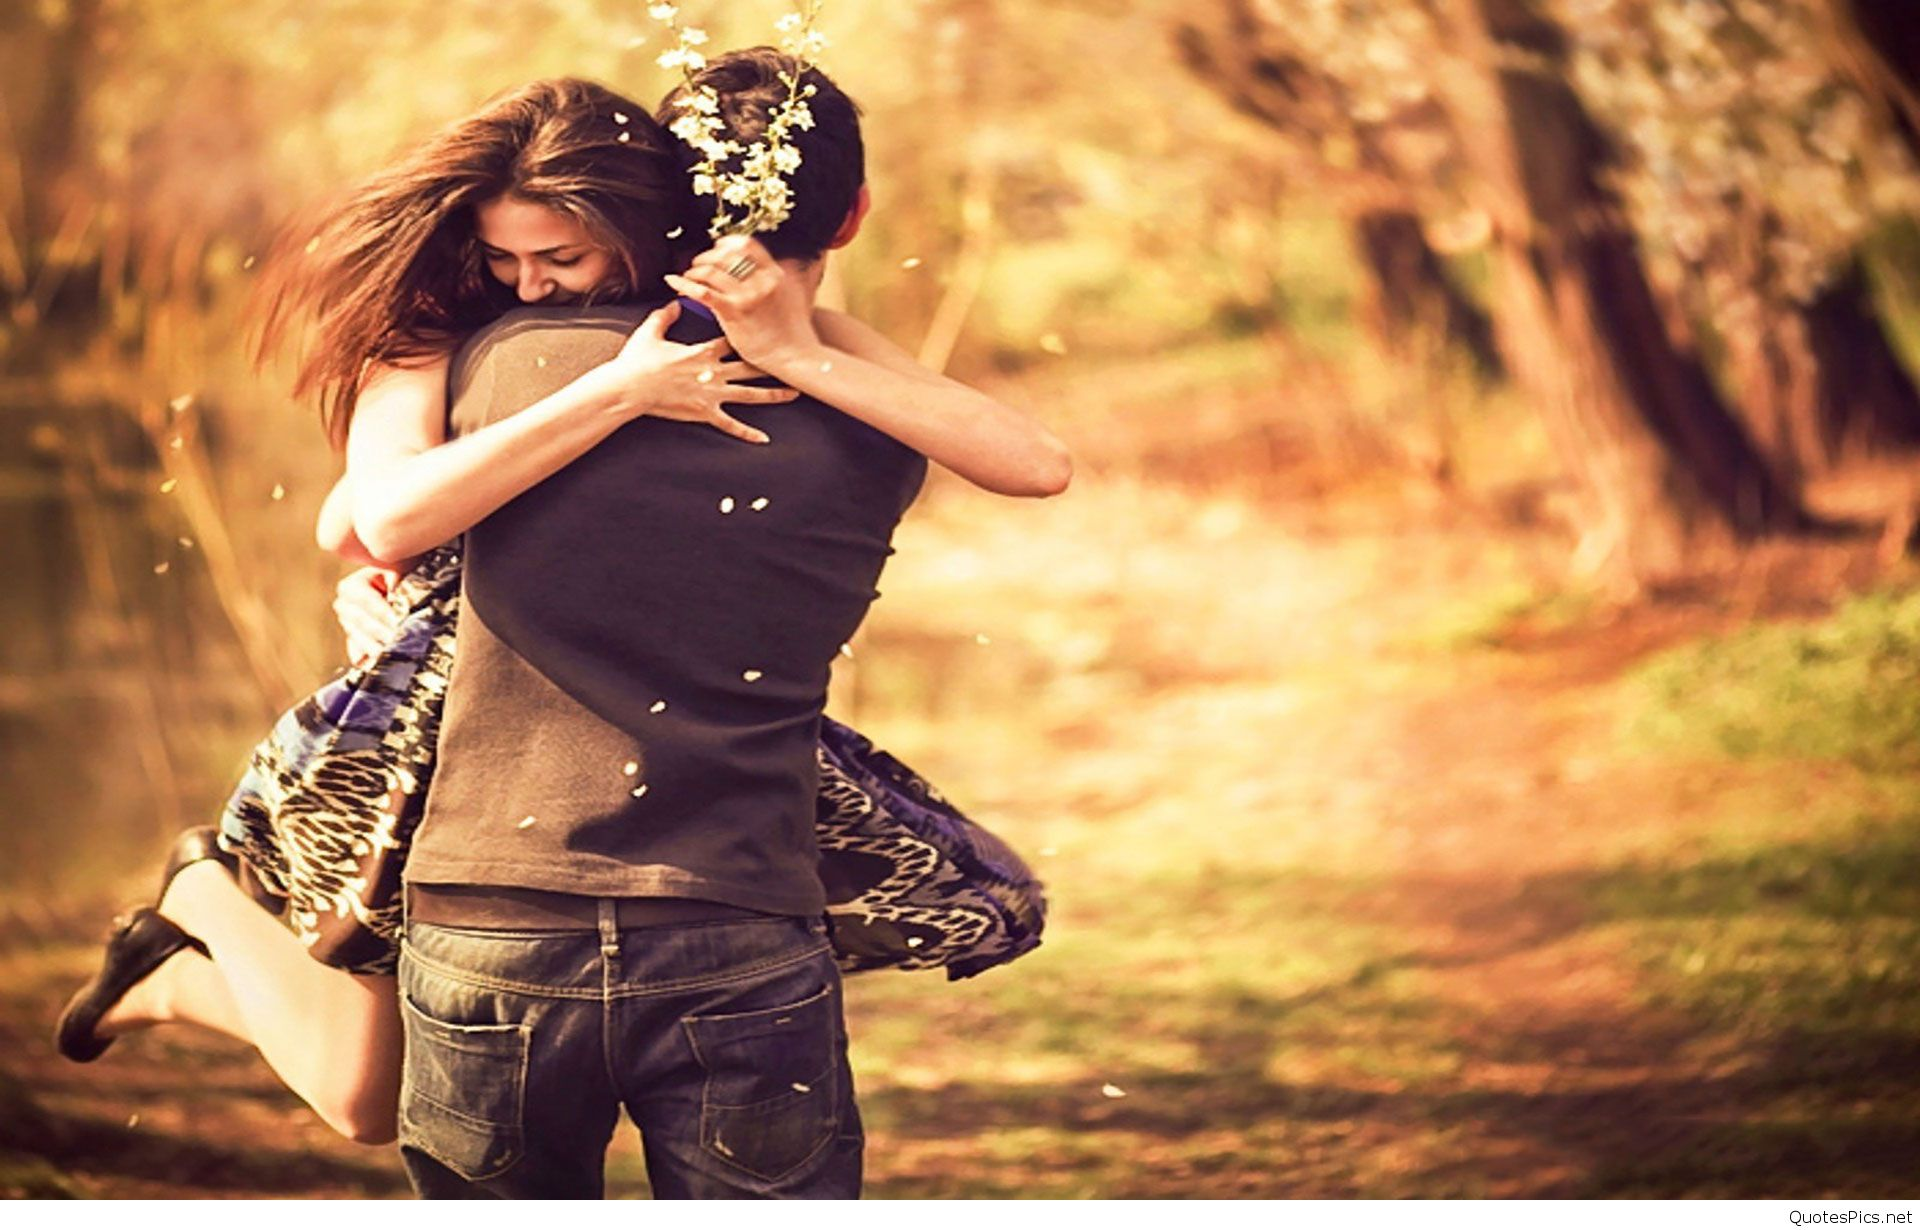 cute and lovely romantic love wallpapers artatm creative art 1920a—1230